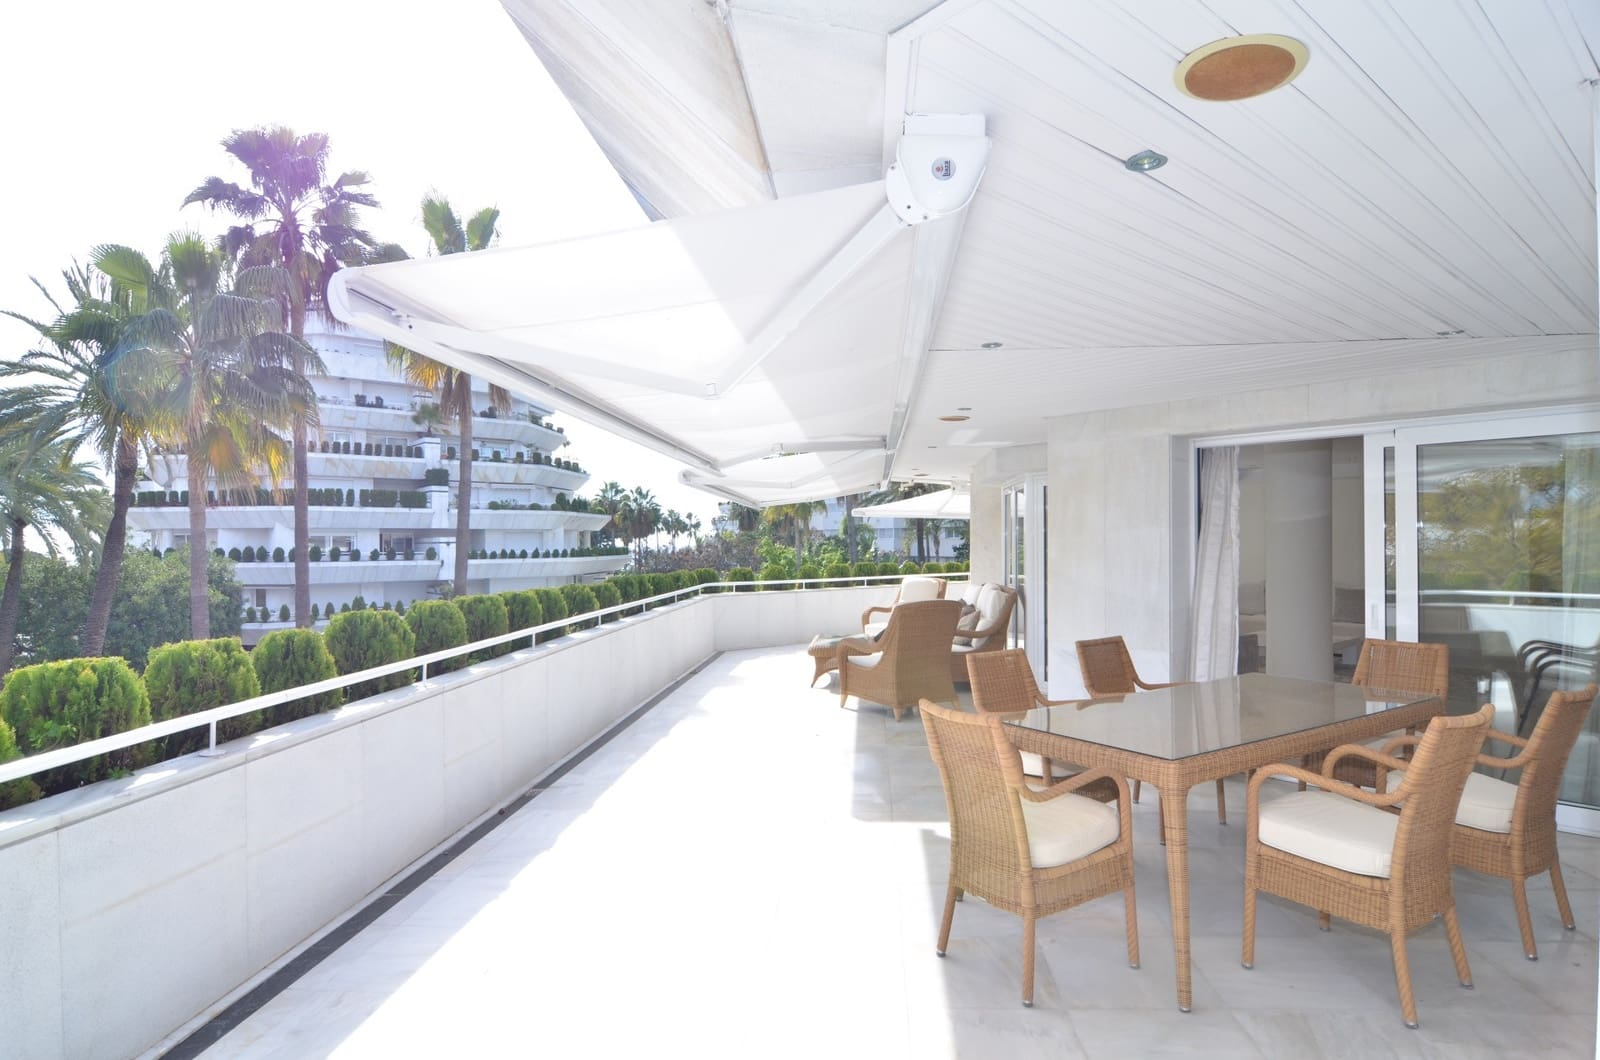 2 bedroom Apartment for sale in Marbella with pool garage - € 1,495,000 (Ref: 3492884)